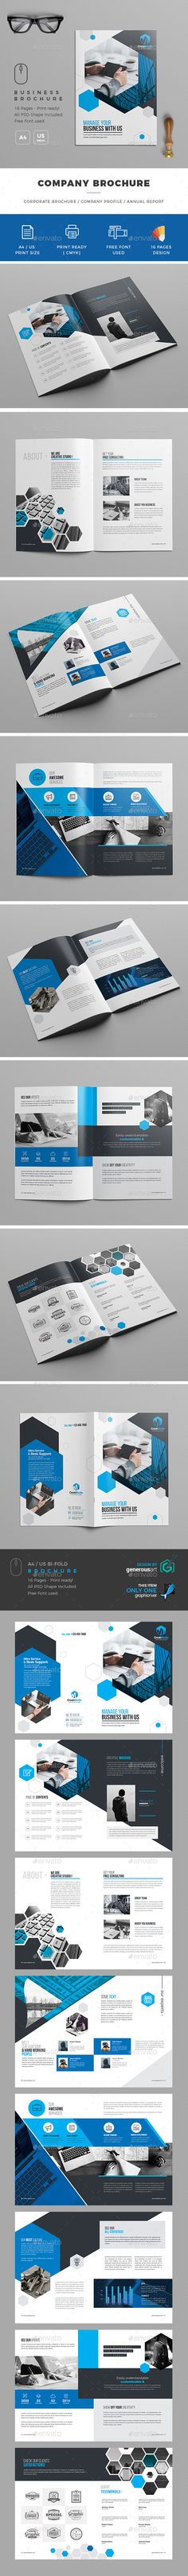 Business Brochure — Photoshop PSD #business #horizontal • Download ➝ https://graphicriver.net/item/business-brochure/19587301?ref=pxcr